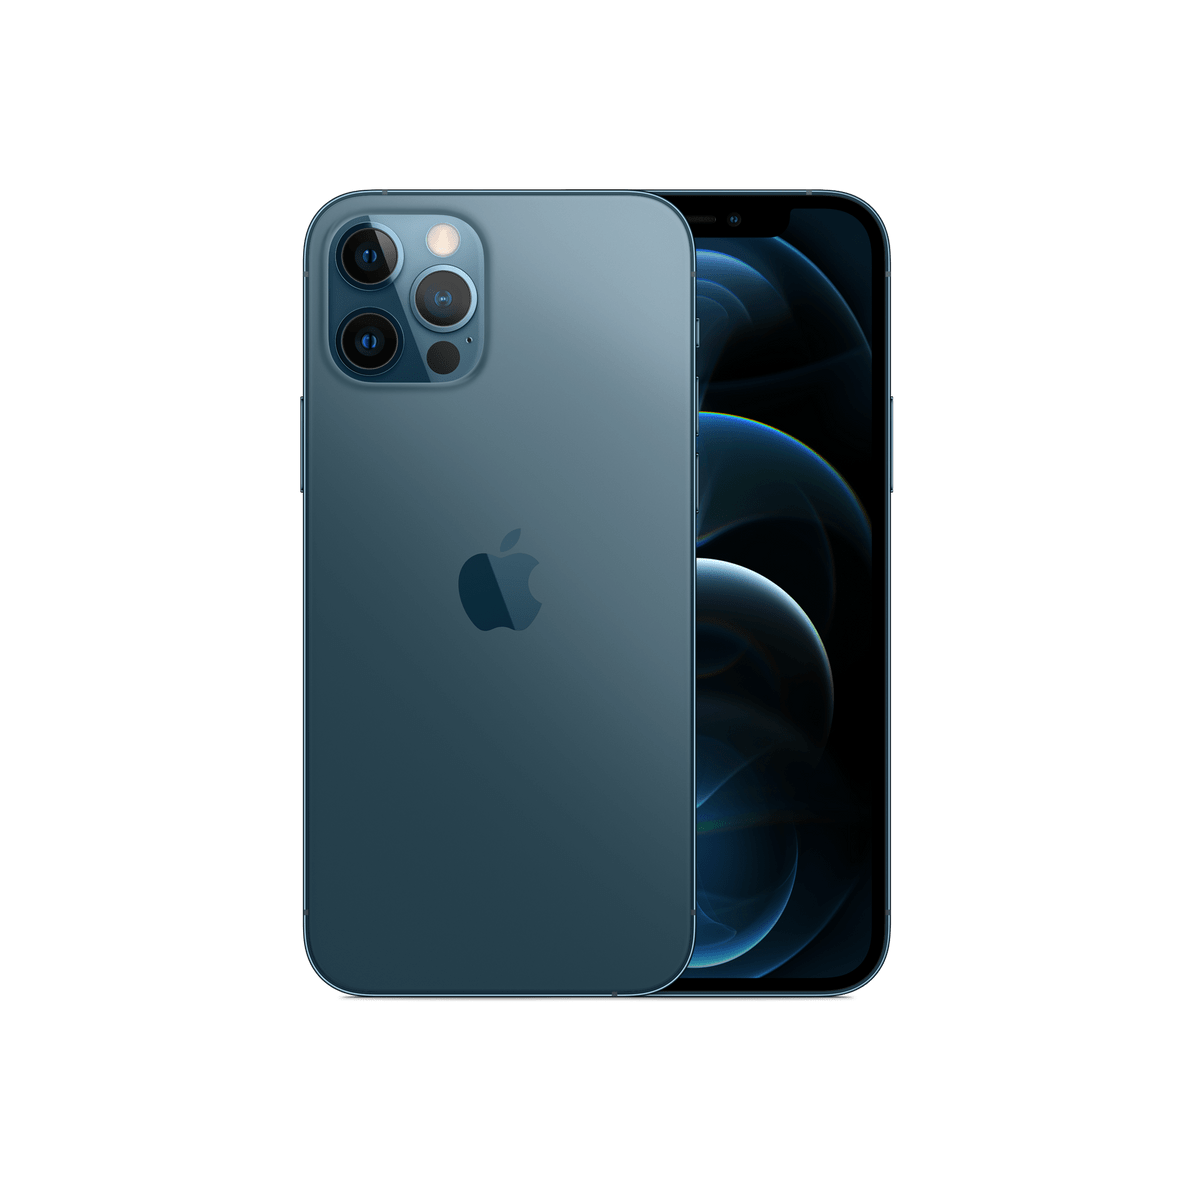 Apple iPhone 12 Pro 512Gb Pacific Blue 5G With FaceTime